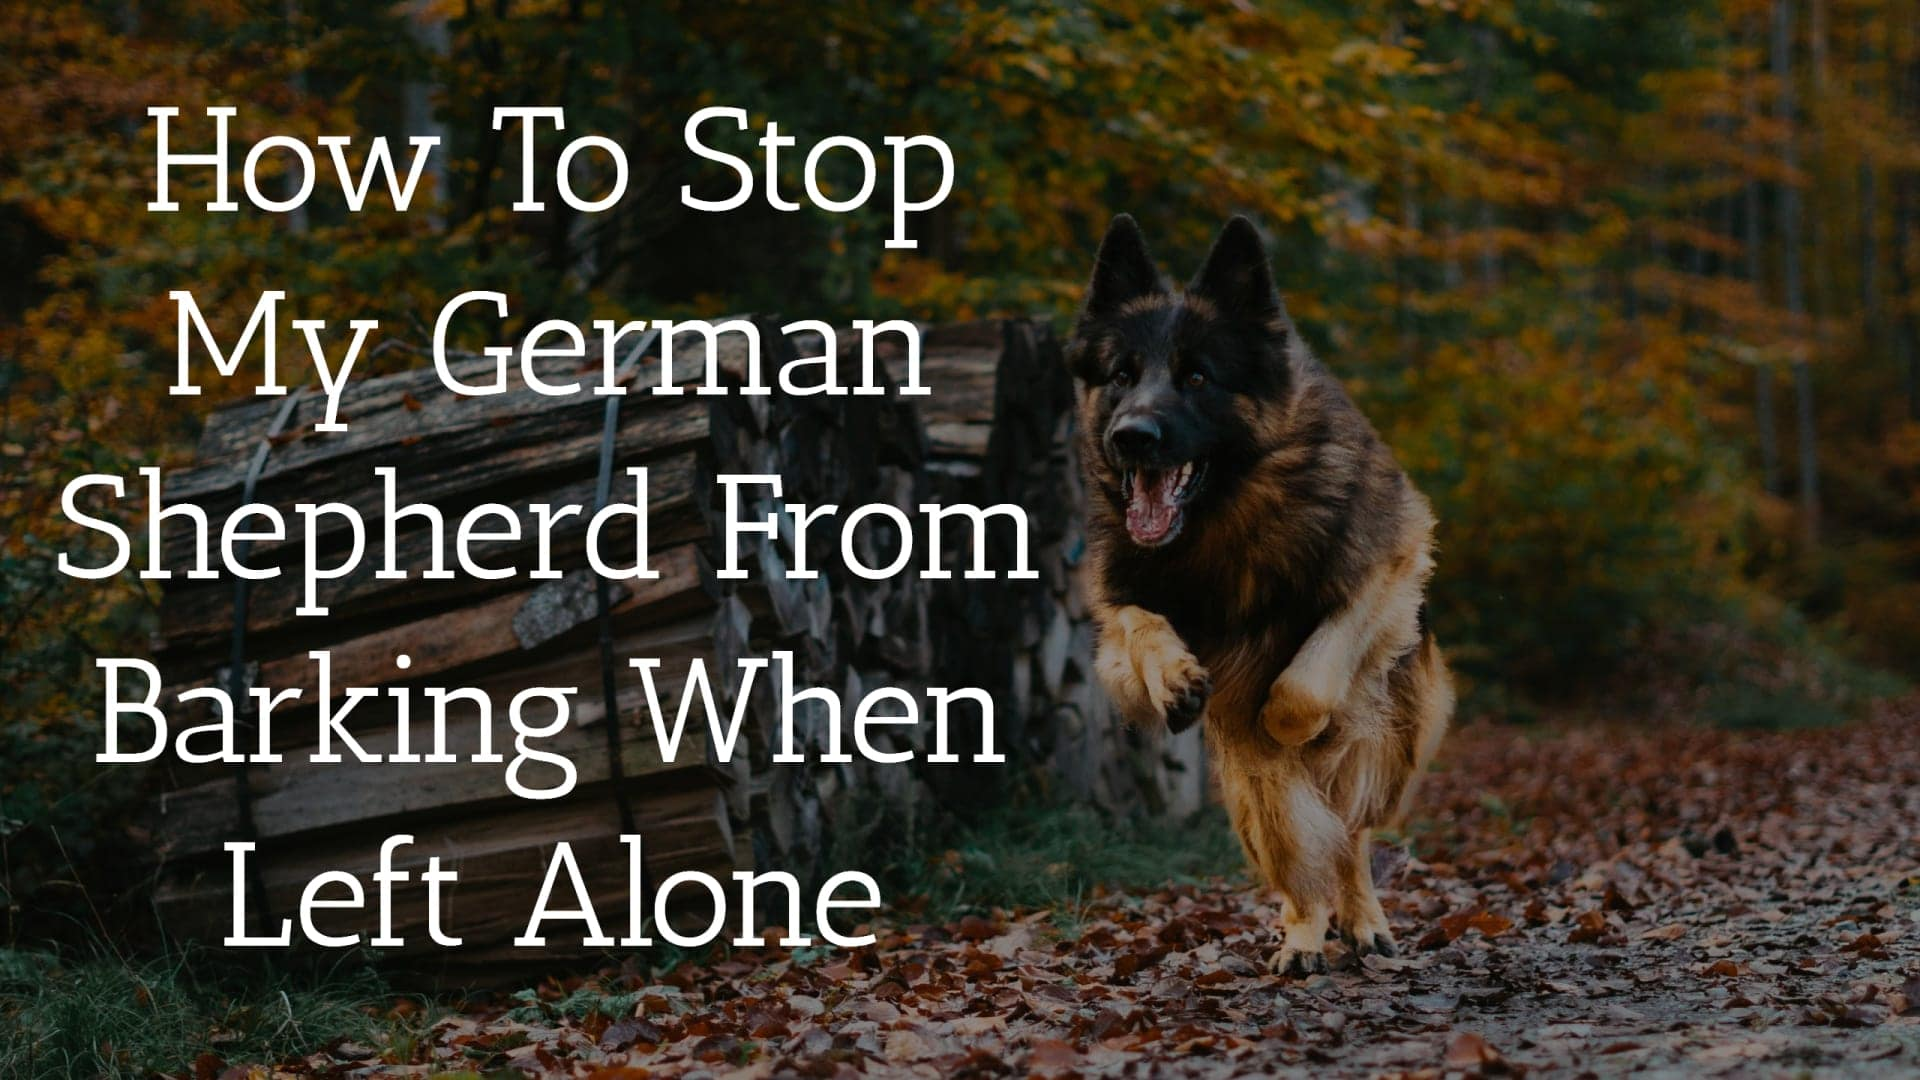 How To Stop My German Shepherd From Barking When Left Alone